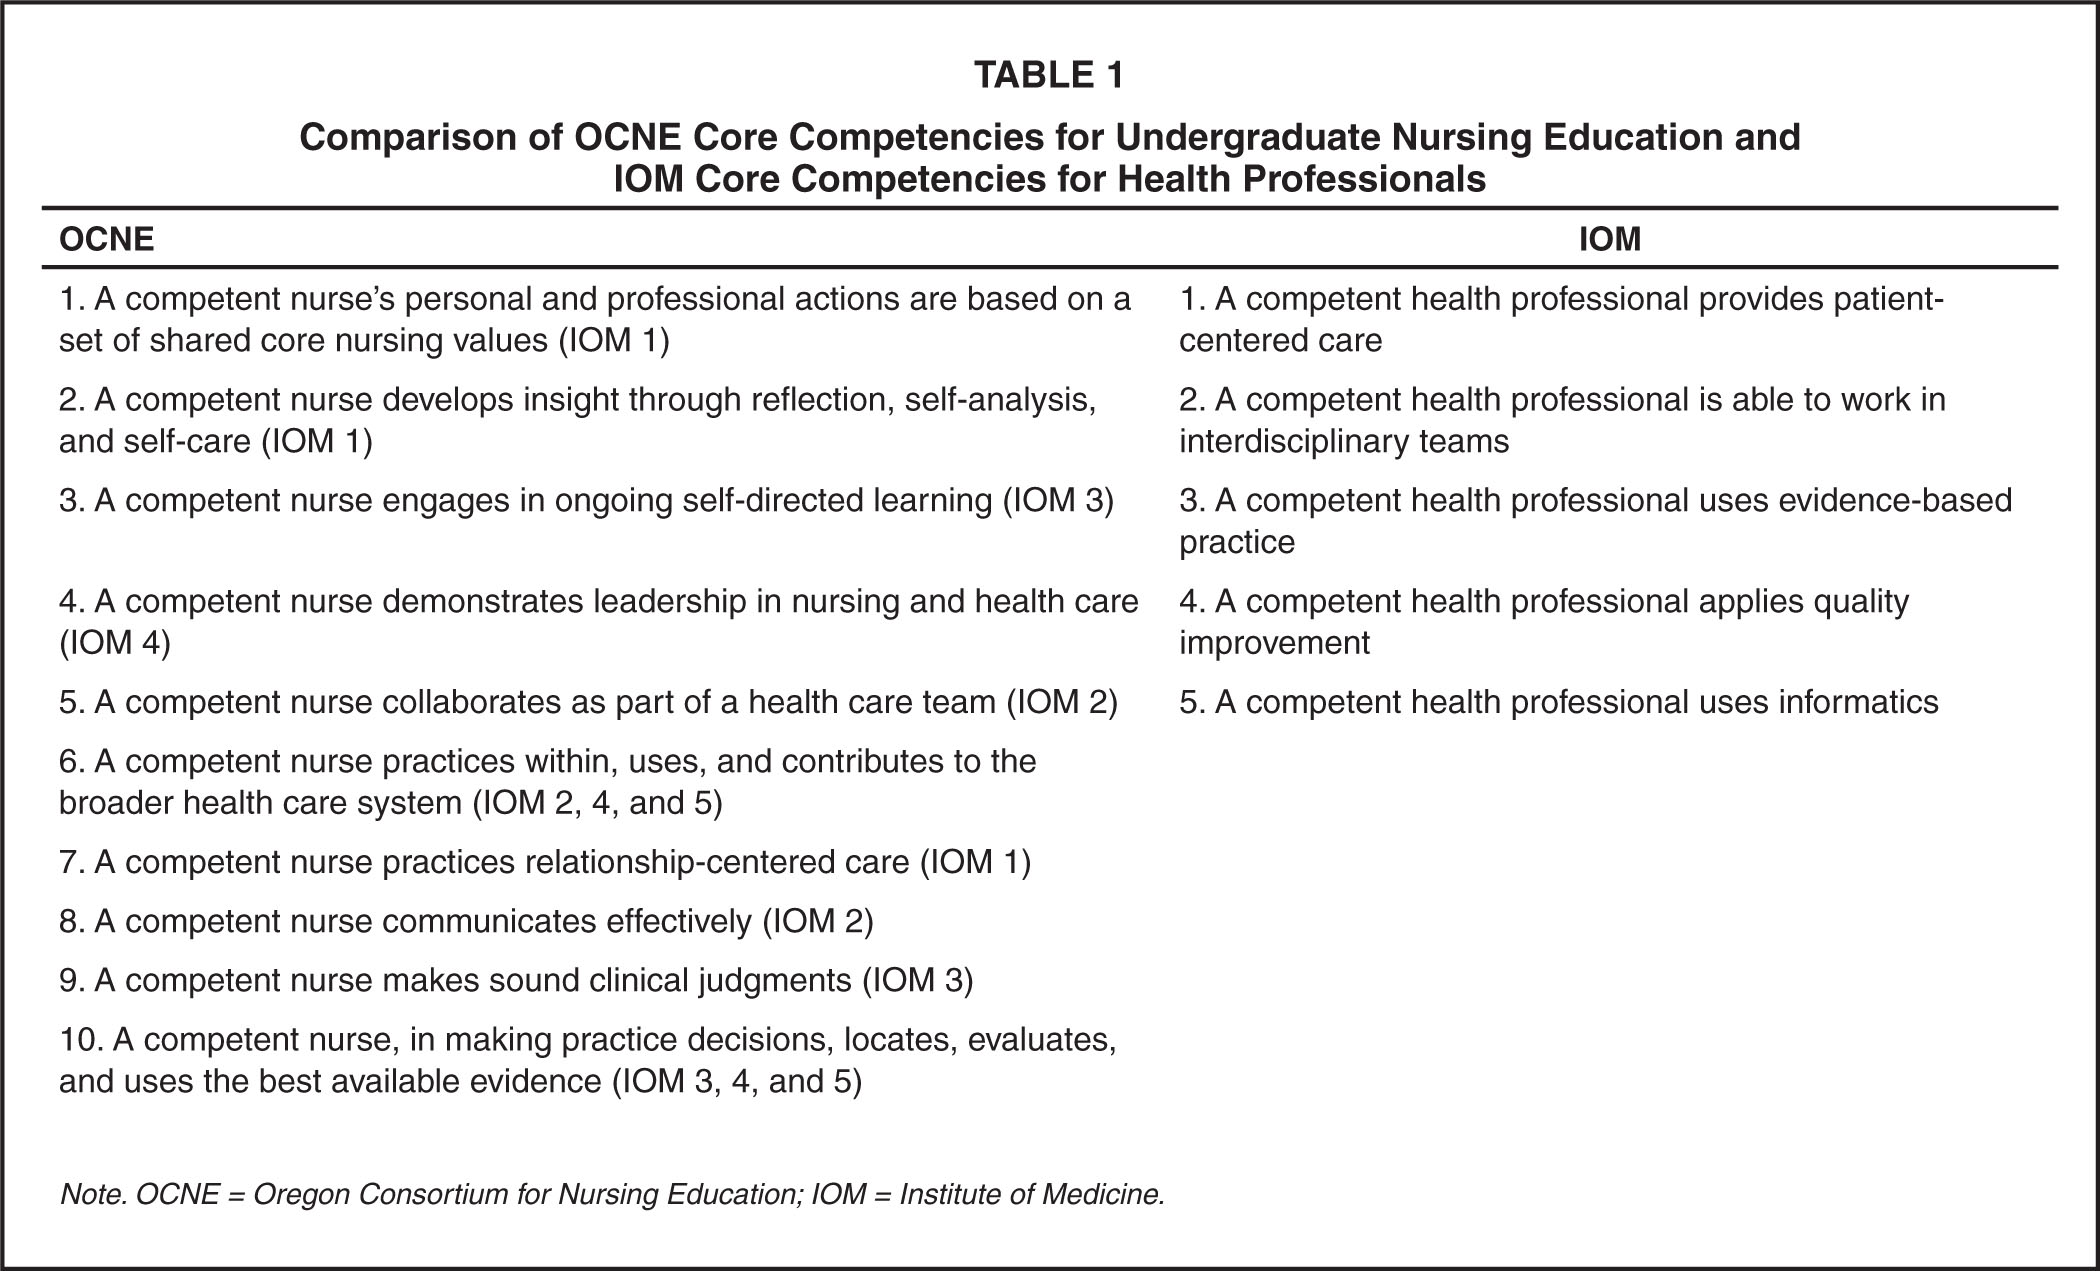 Comparison of OCNE Core Competencies for Undergraduate Nursing Education and IOM Core Competencies for Health Professionals